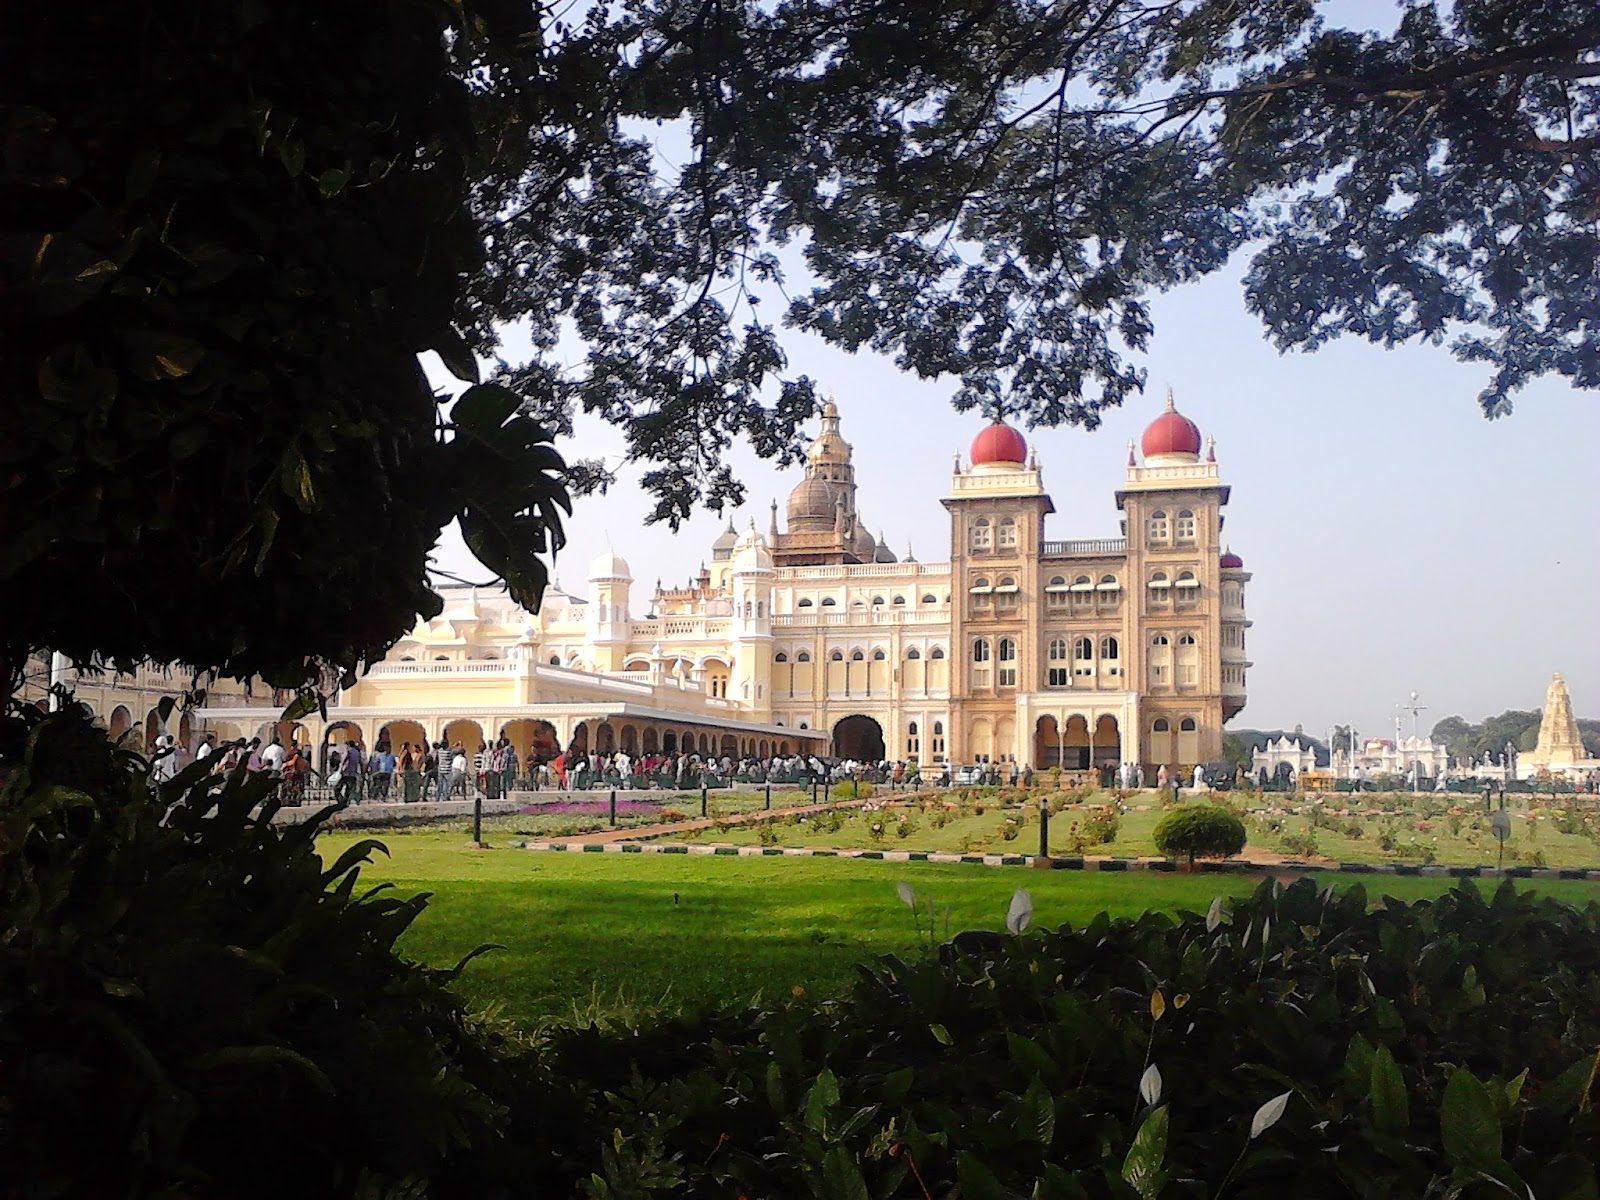 A beautiful view of Ambavilas Palace, Mysore